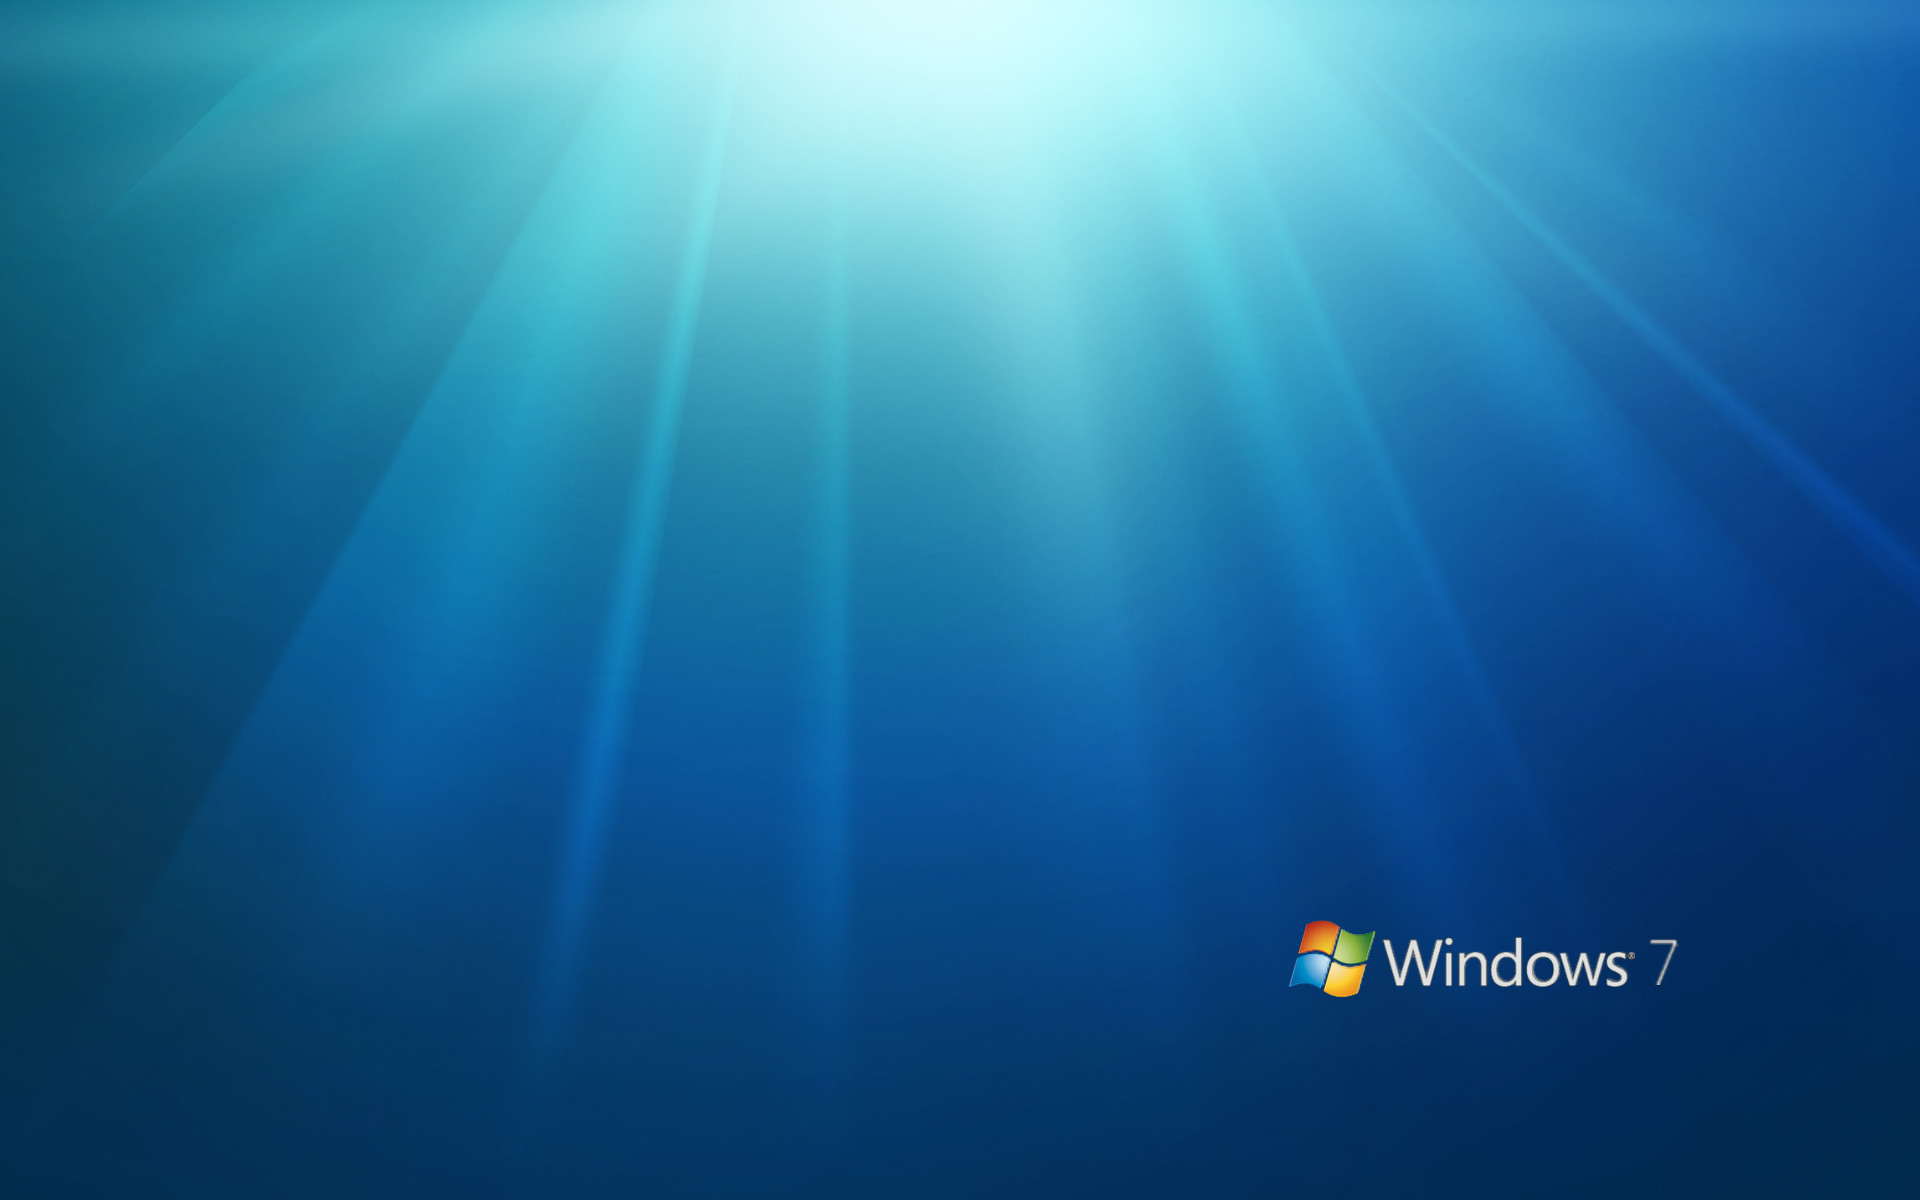 Windows® 10, 8 thousands free stunning desktop backgrounds sound schemes  out for. 1, 8, 7, or recovery media available format download in to change  disk …